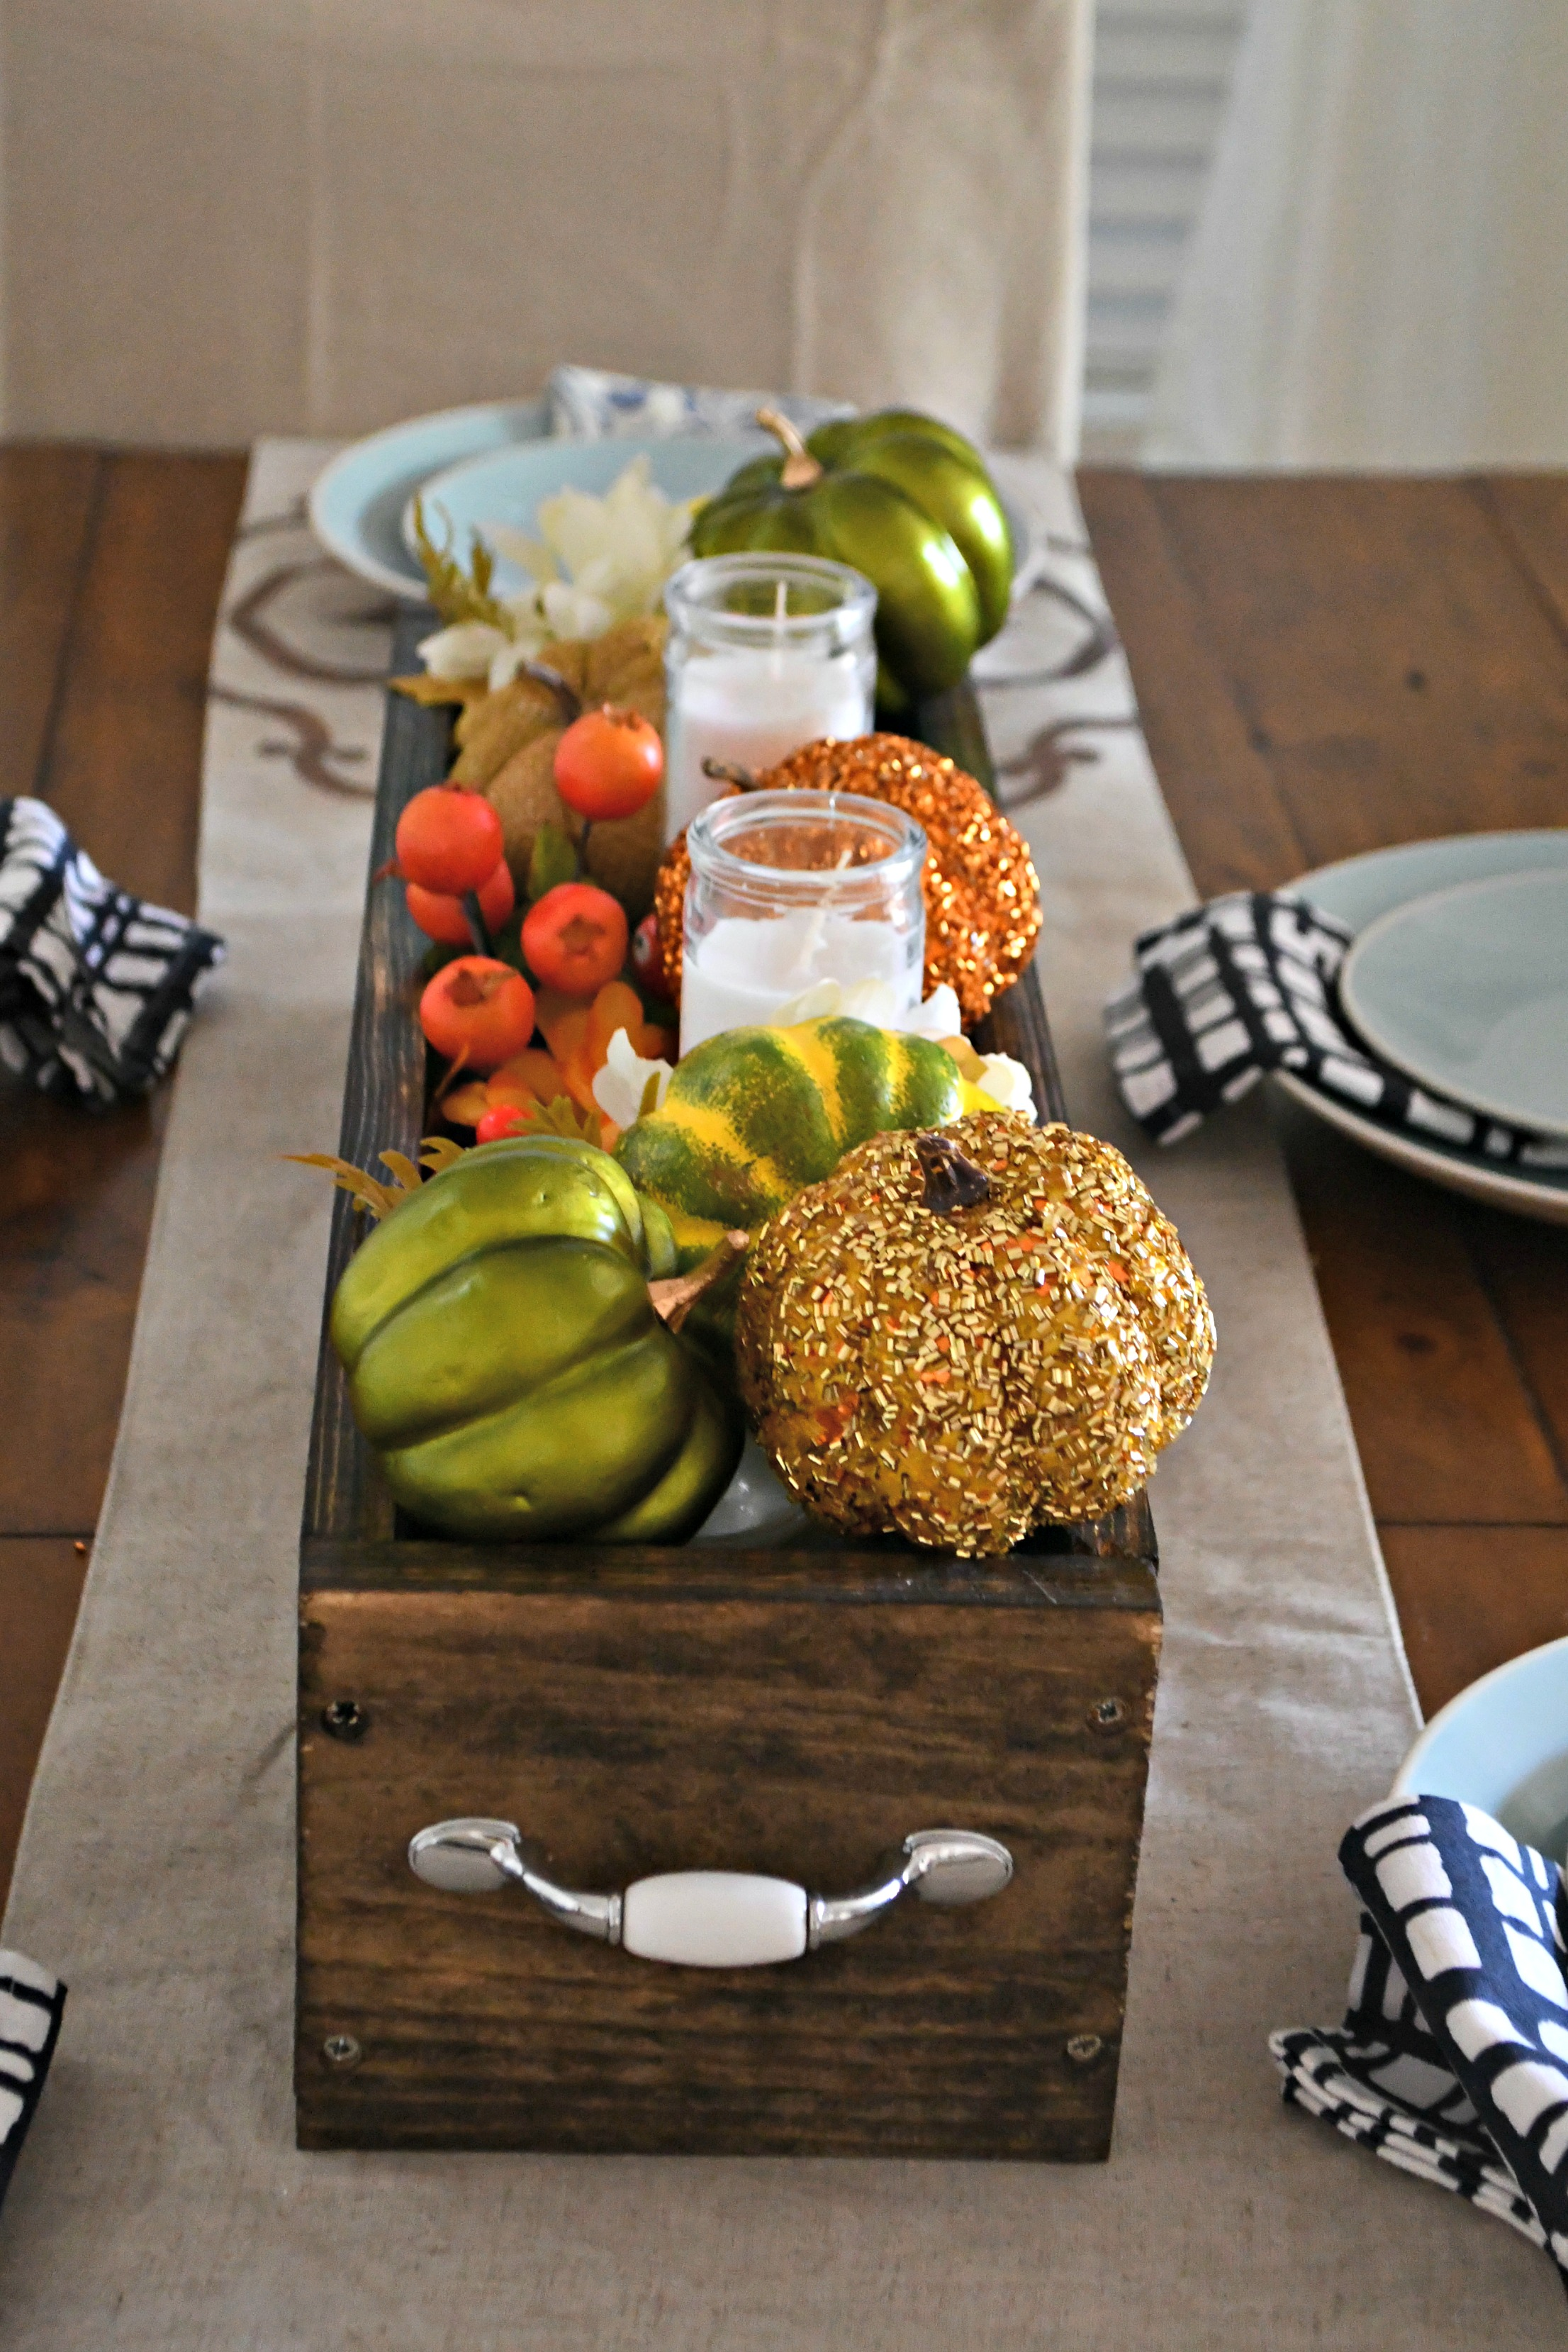 dollar tree fall centerpiece - one of my looks uses a fun assortment of pumpkins, greenery, and candles